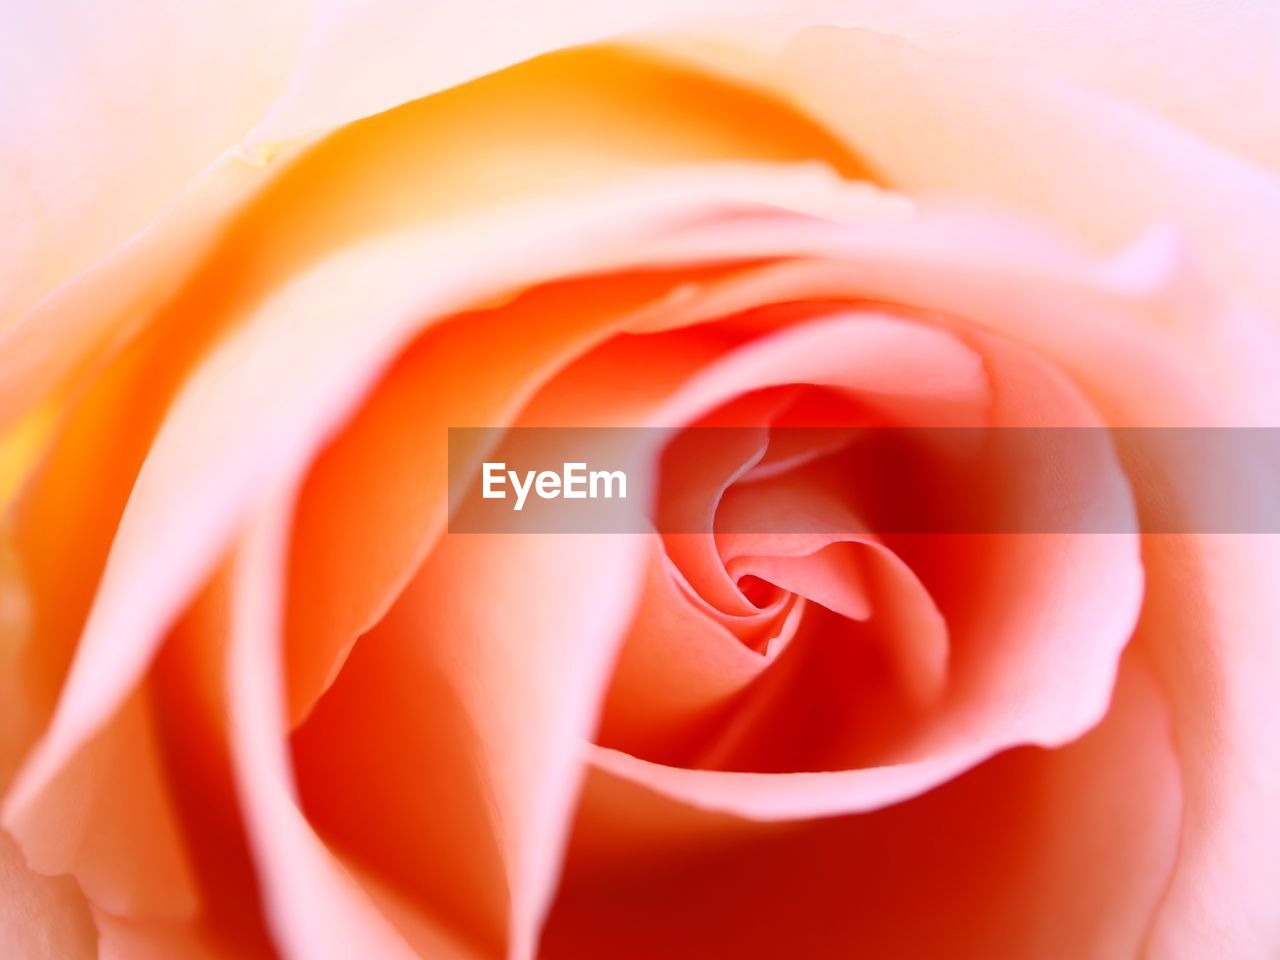 flower, beauty in nature, flowering plant, petal, vulnerability, fragility, plant, flower head, close-up, inflorescence, freshness, rose, full frame, rose - flower, no people, growth, backgrounds, nature, orange color, softness